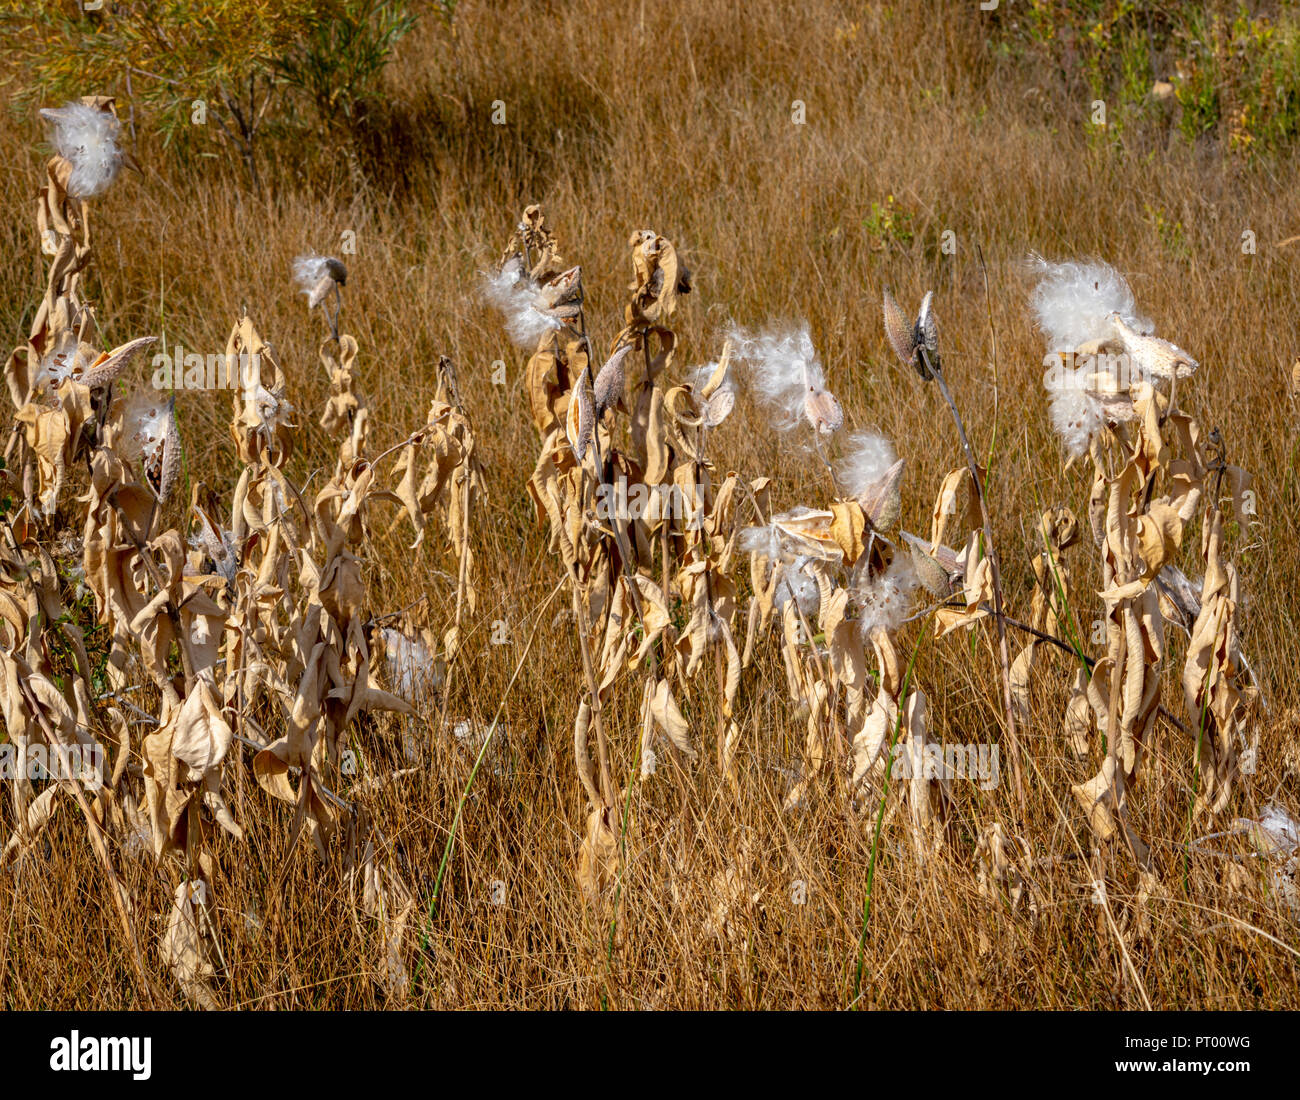 Showy Milkweed (Asclepias speciosa) plants dispersing seeds from pods in October, Castle Rock Colorado US. - Stock Image